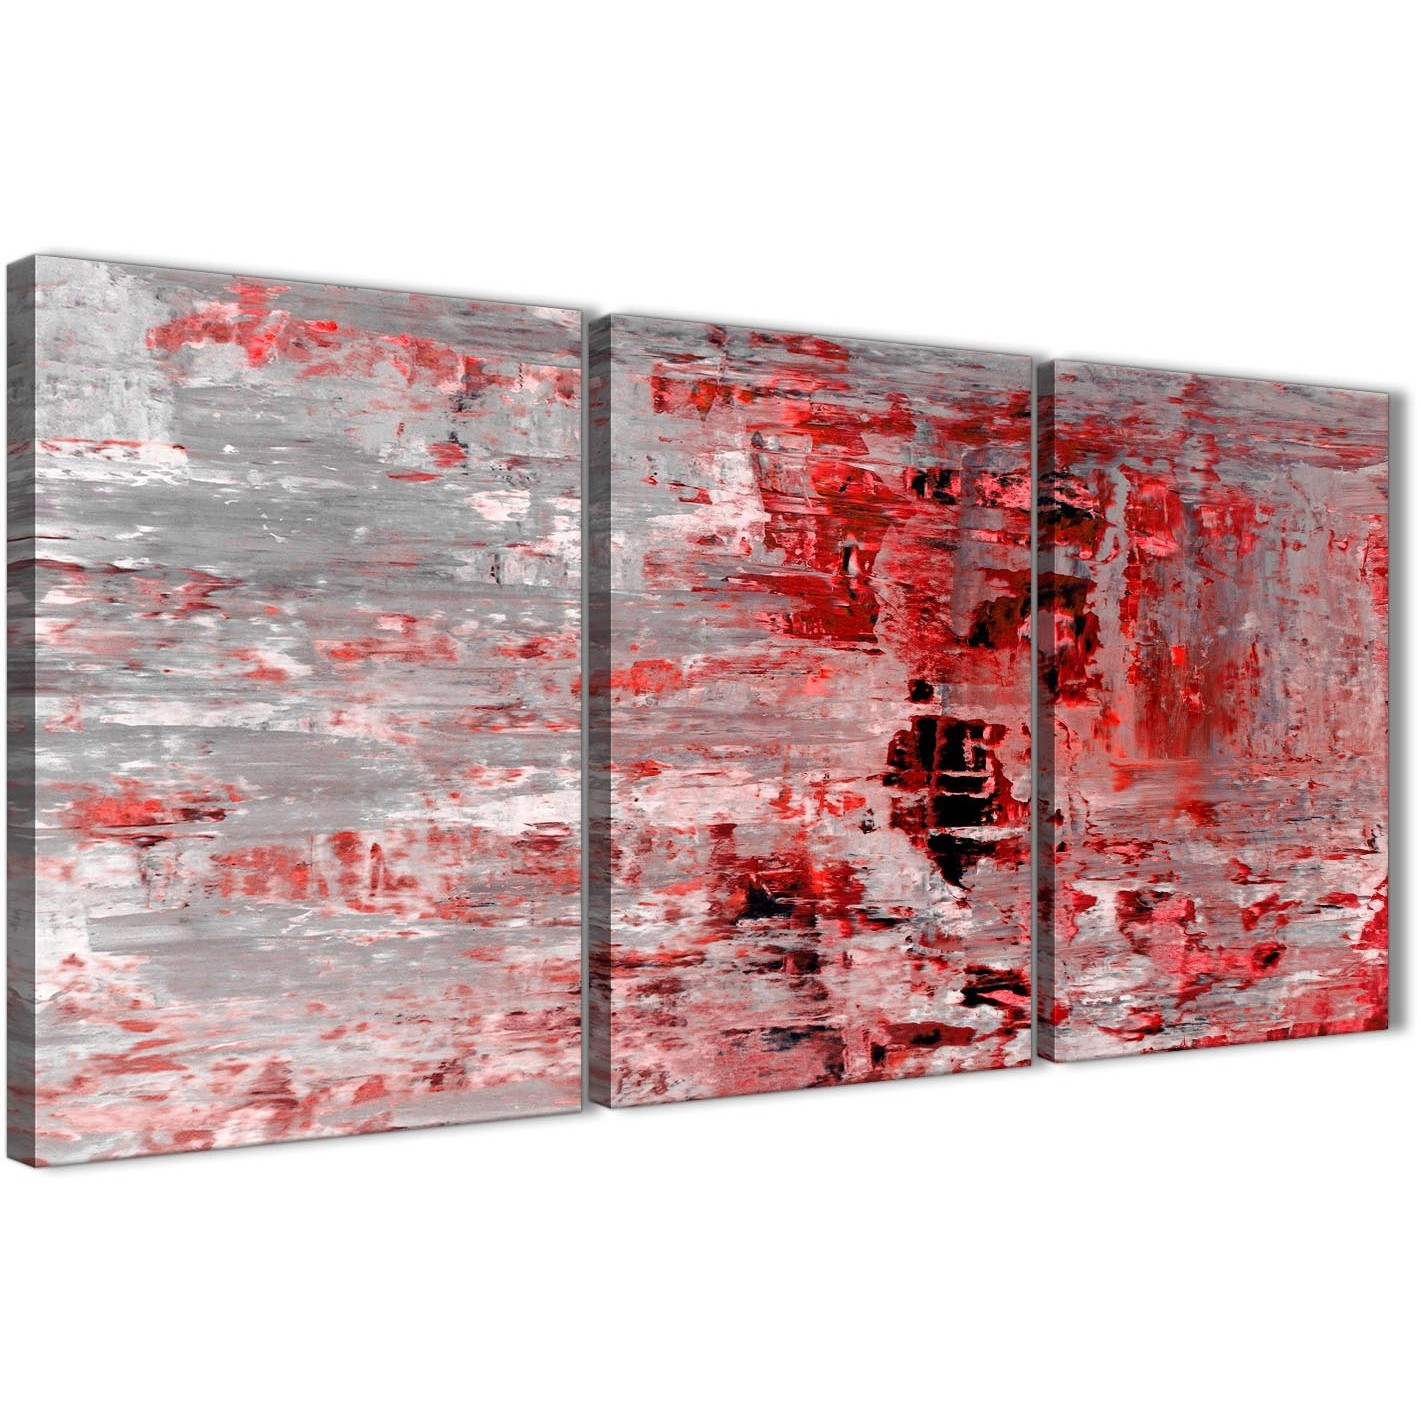 3 Piece Red Grey Painting Living Room Canvas Wall Art Decor Regarding Red Wall Art (Photo 4 of 20)